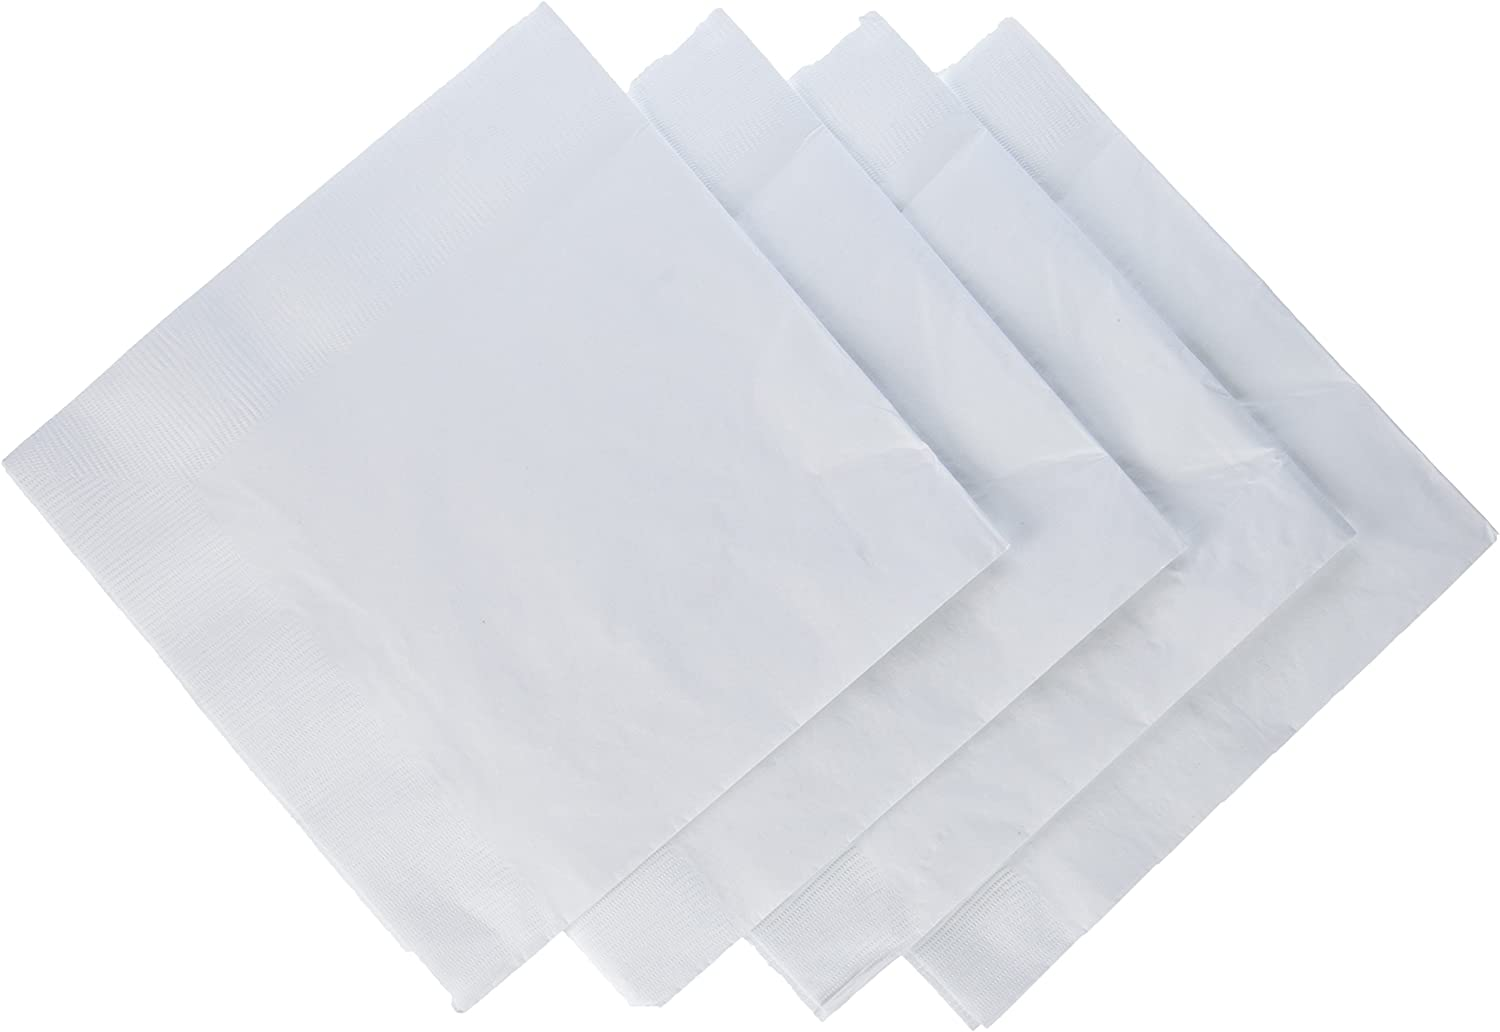 Two Big Party Packs of 2 Ply Disposable Paper Napkins. Red and White Beverage Napkins Party Bundle